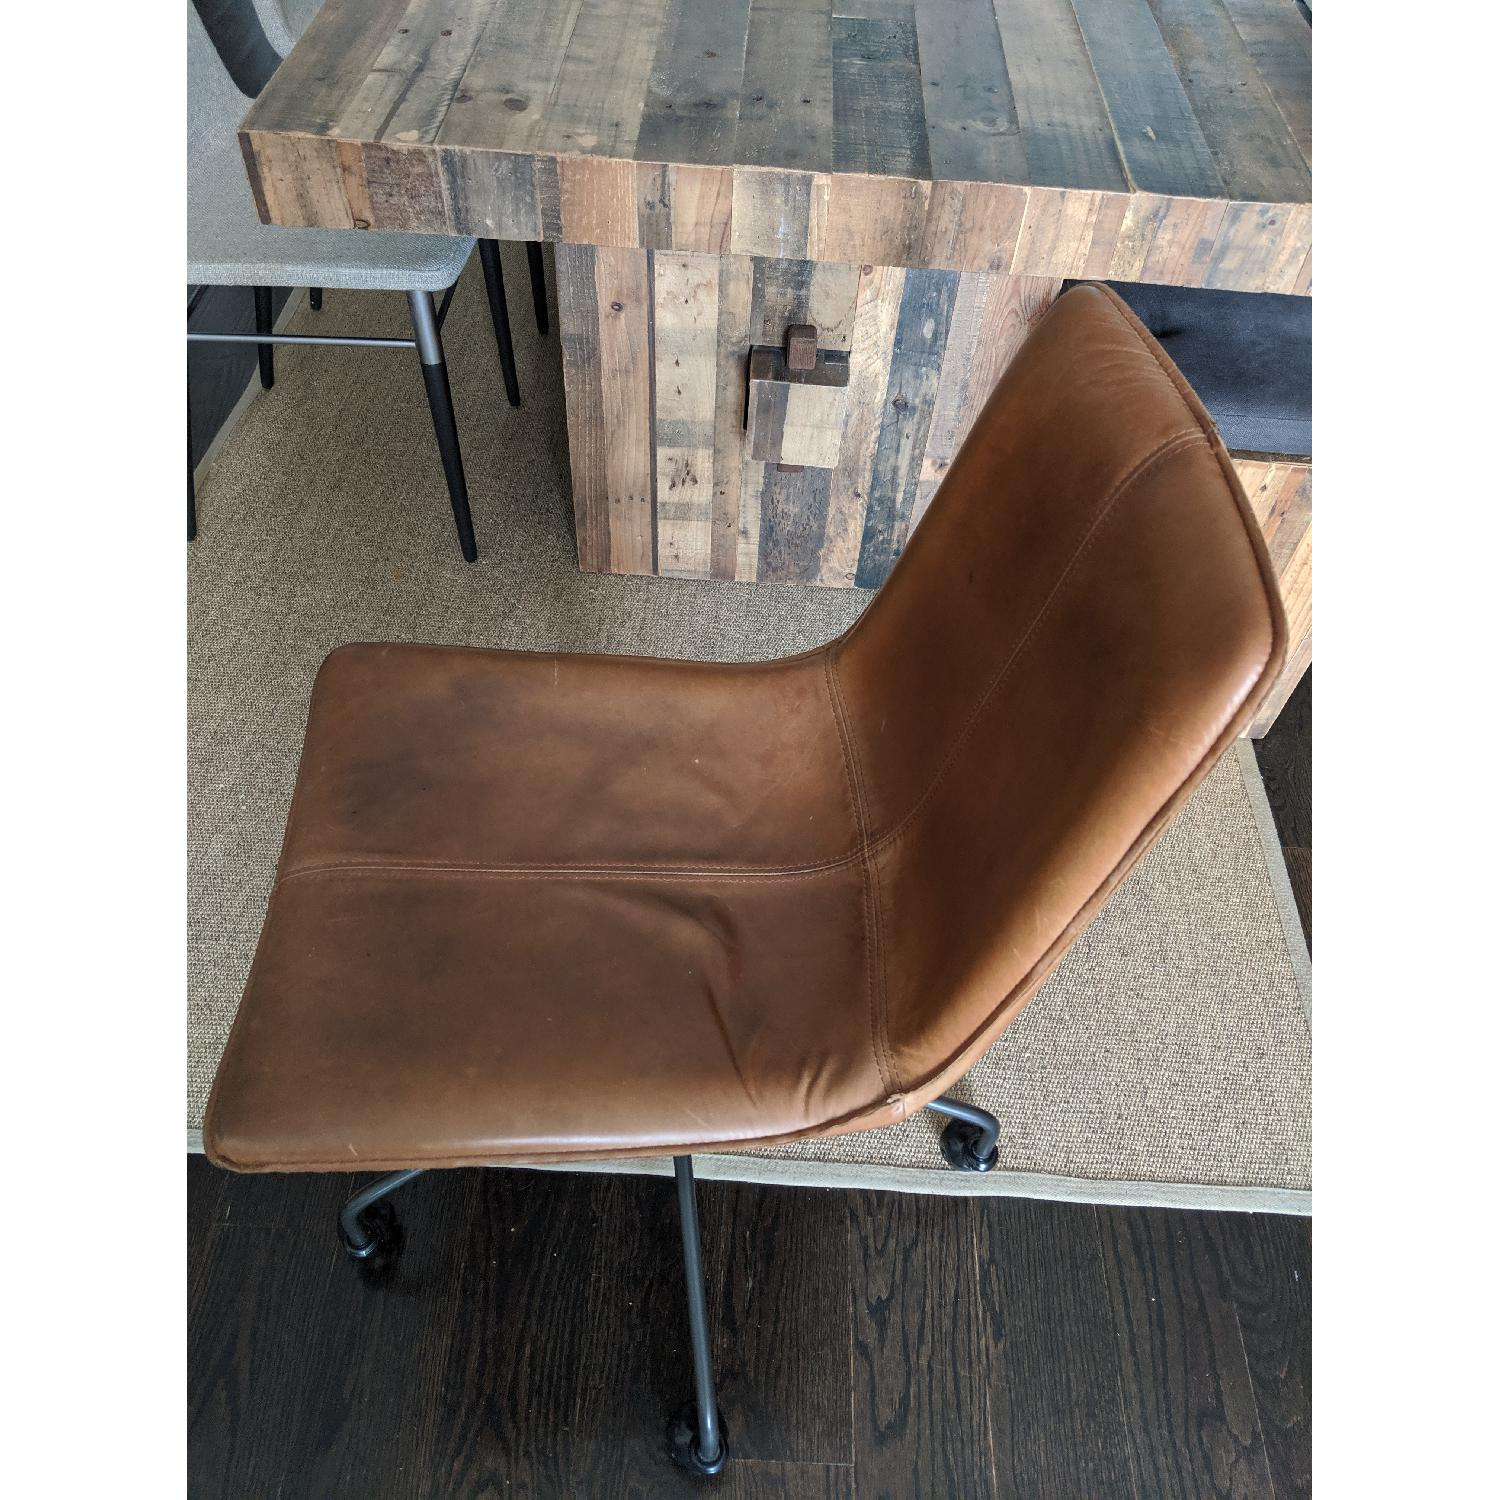 West Elm Slope Leather Swivel Office Chair - image-2